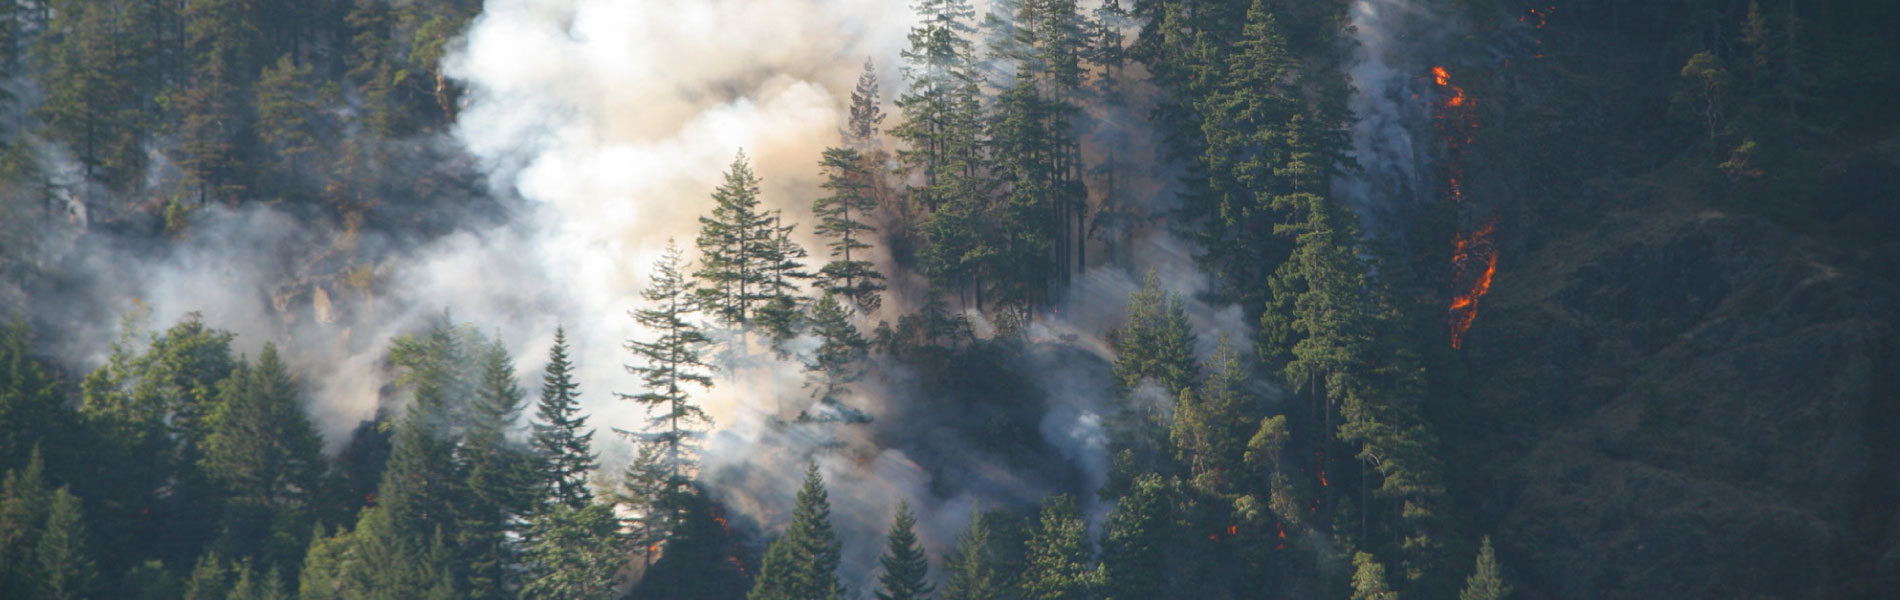 Five Ways to Prevent Forest Fires